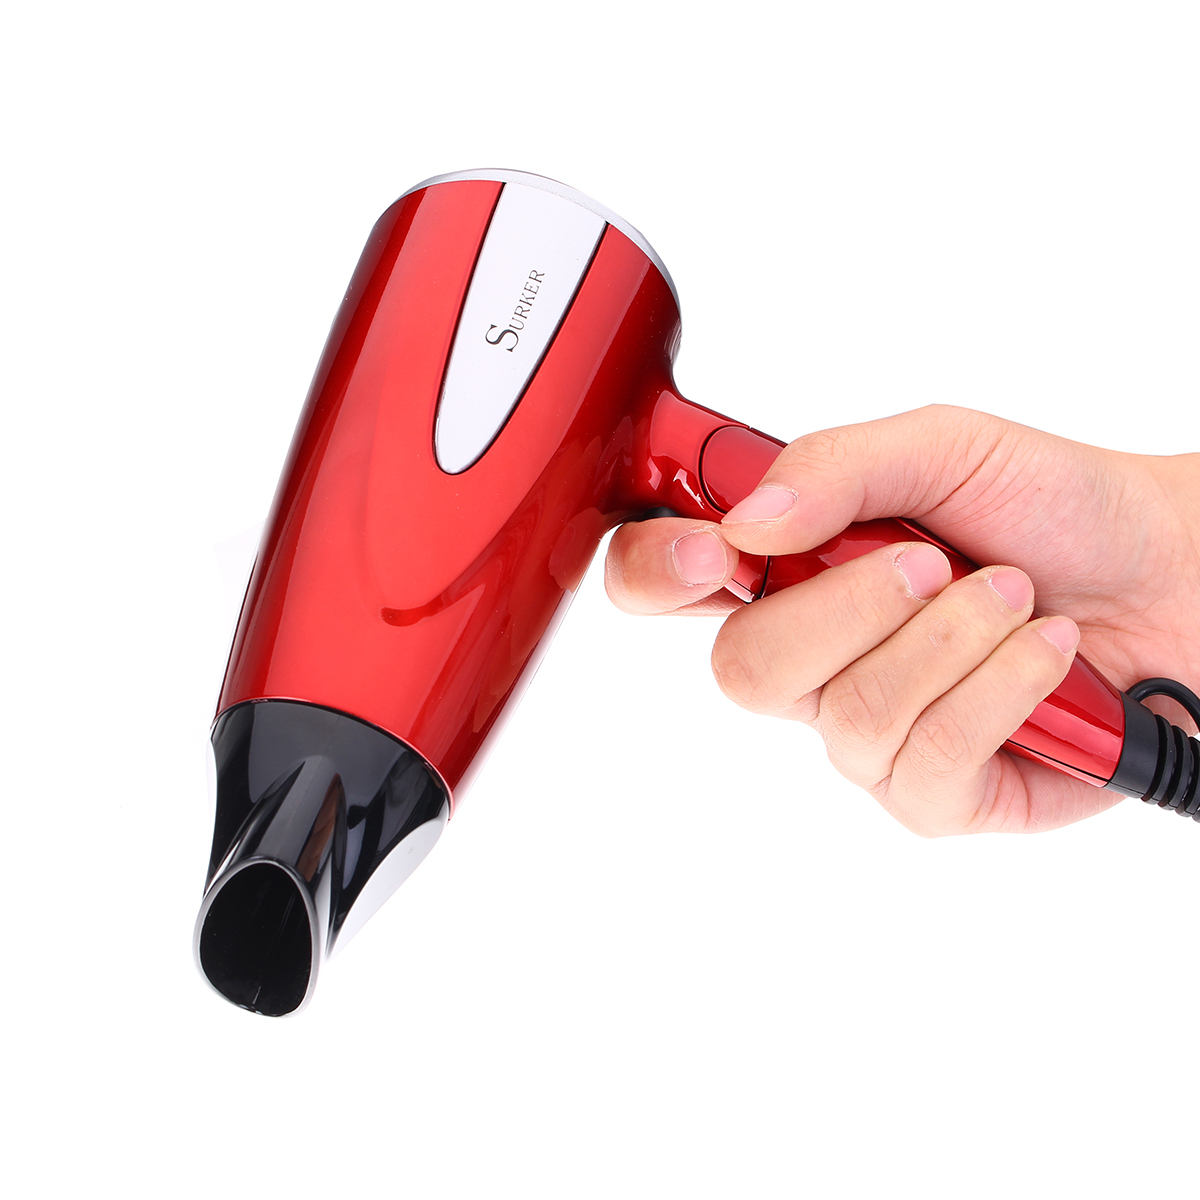 Surker Folding 1800W Hair Dryer Fast Dry Constant Powerful